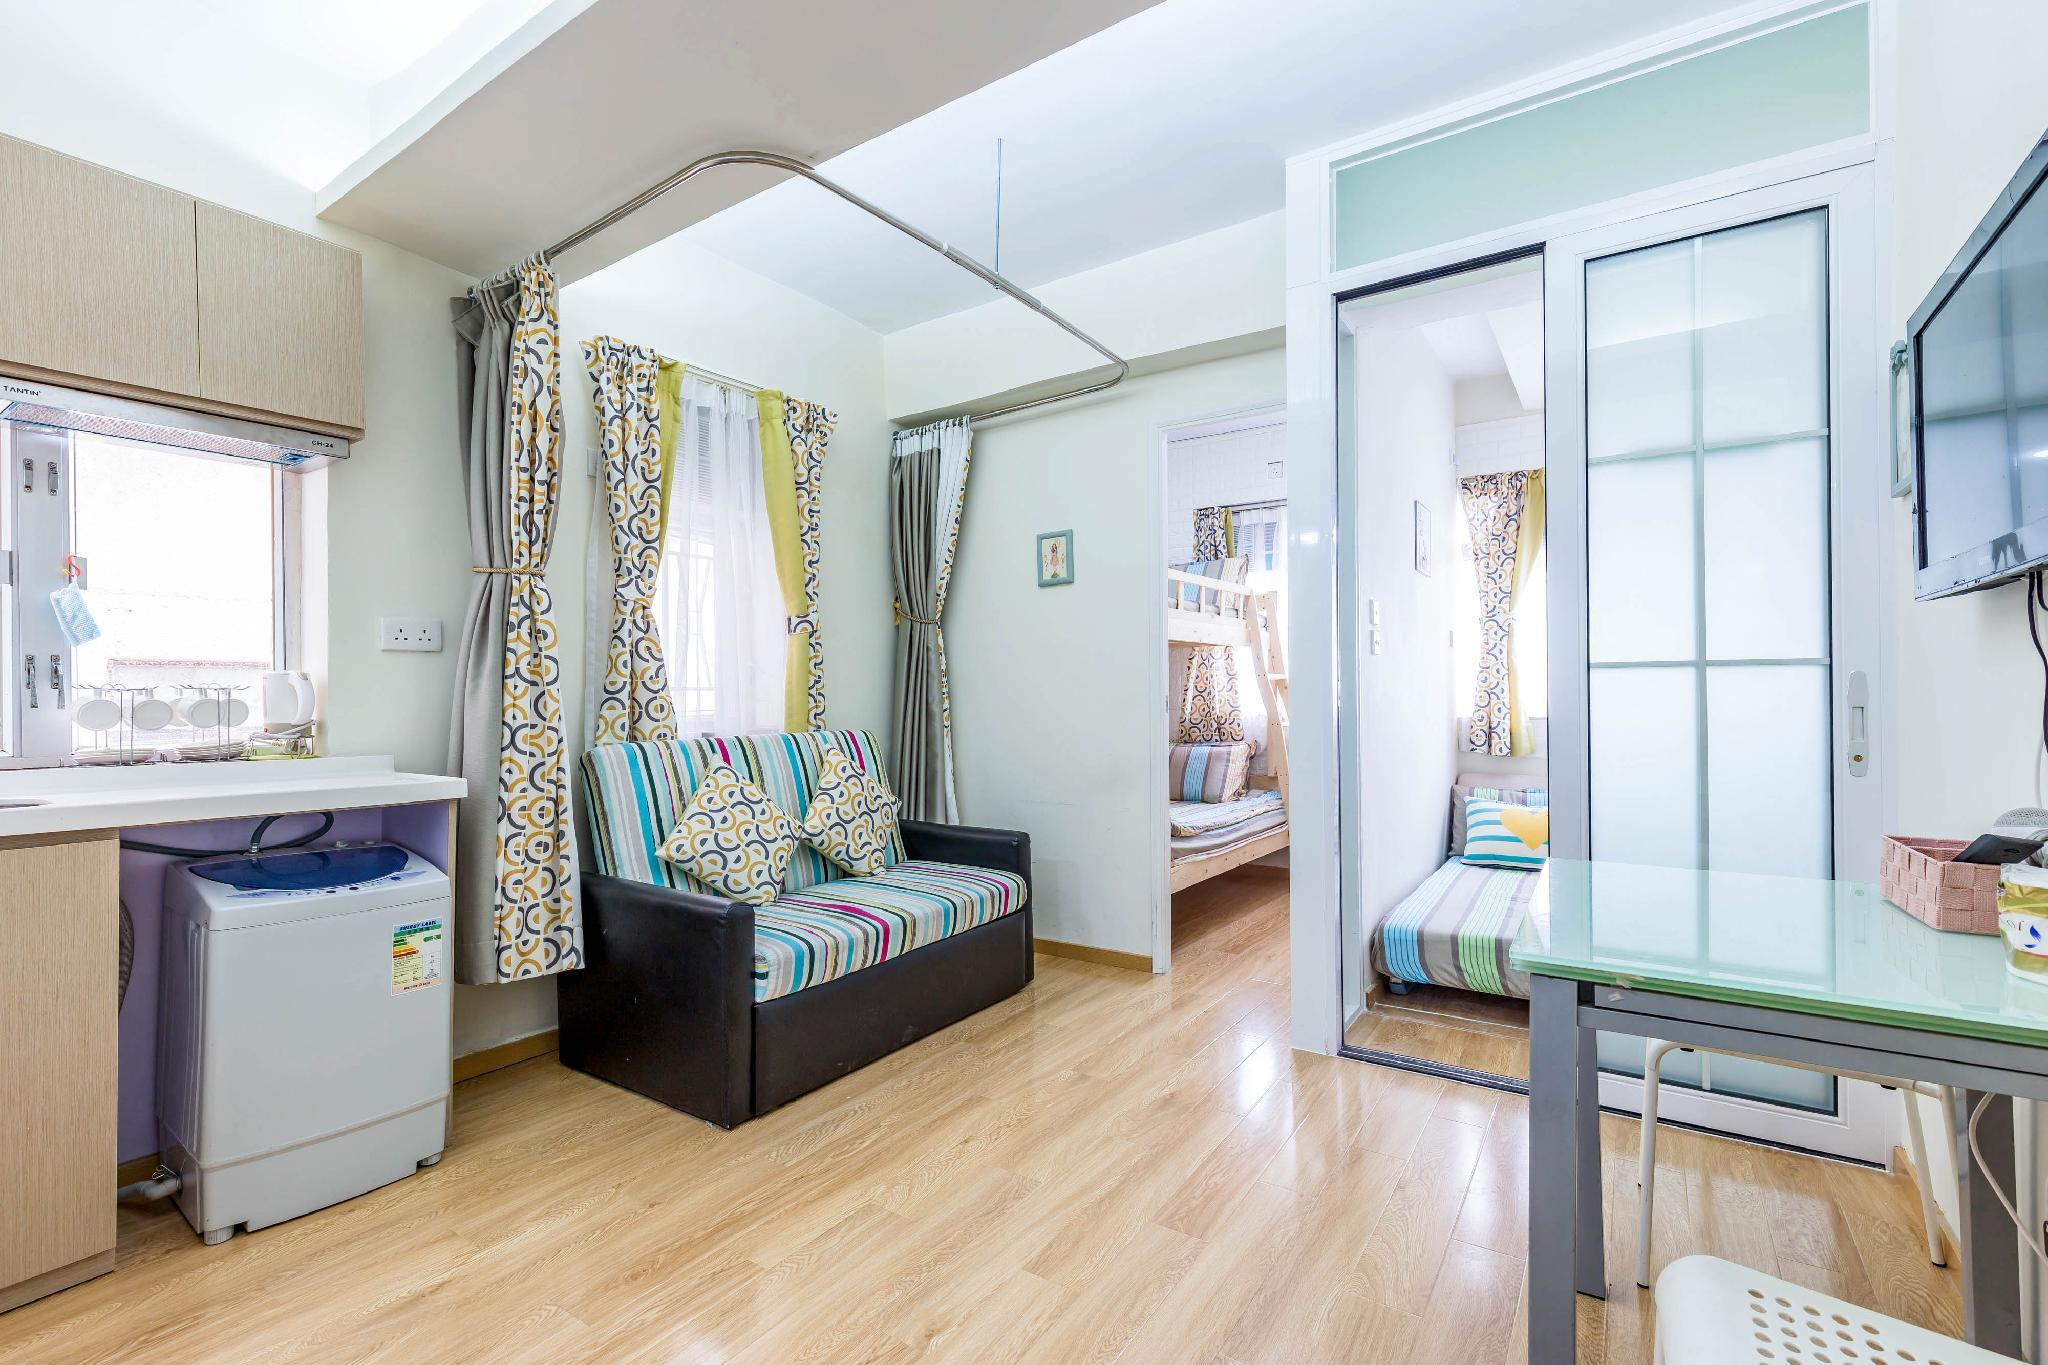 WM 3Bedrooms Apartment Lung Ma Building MK Station